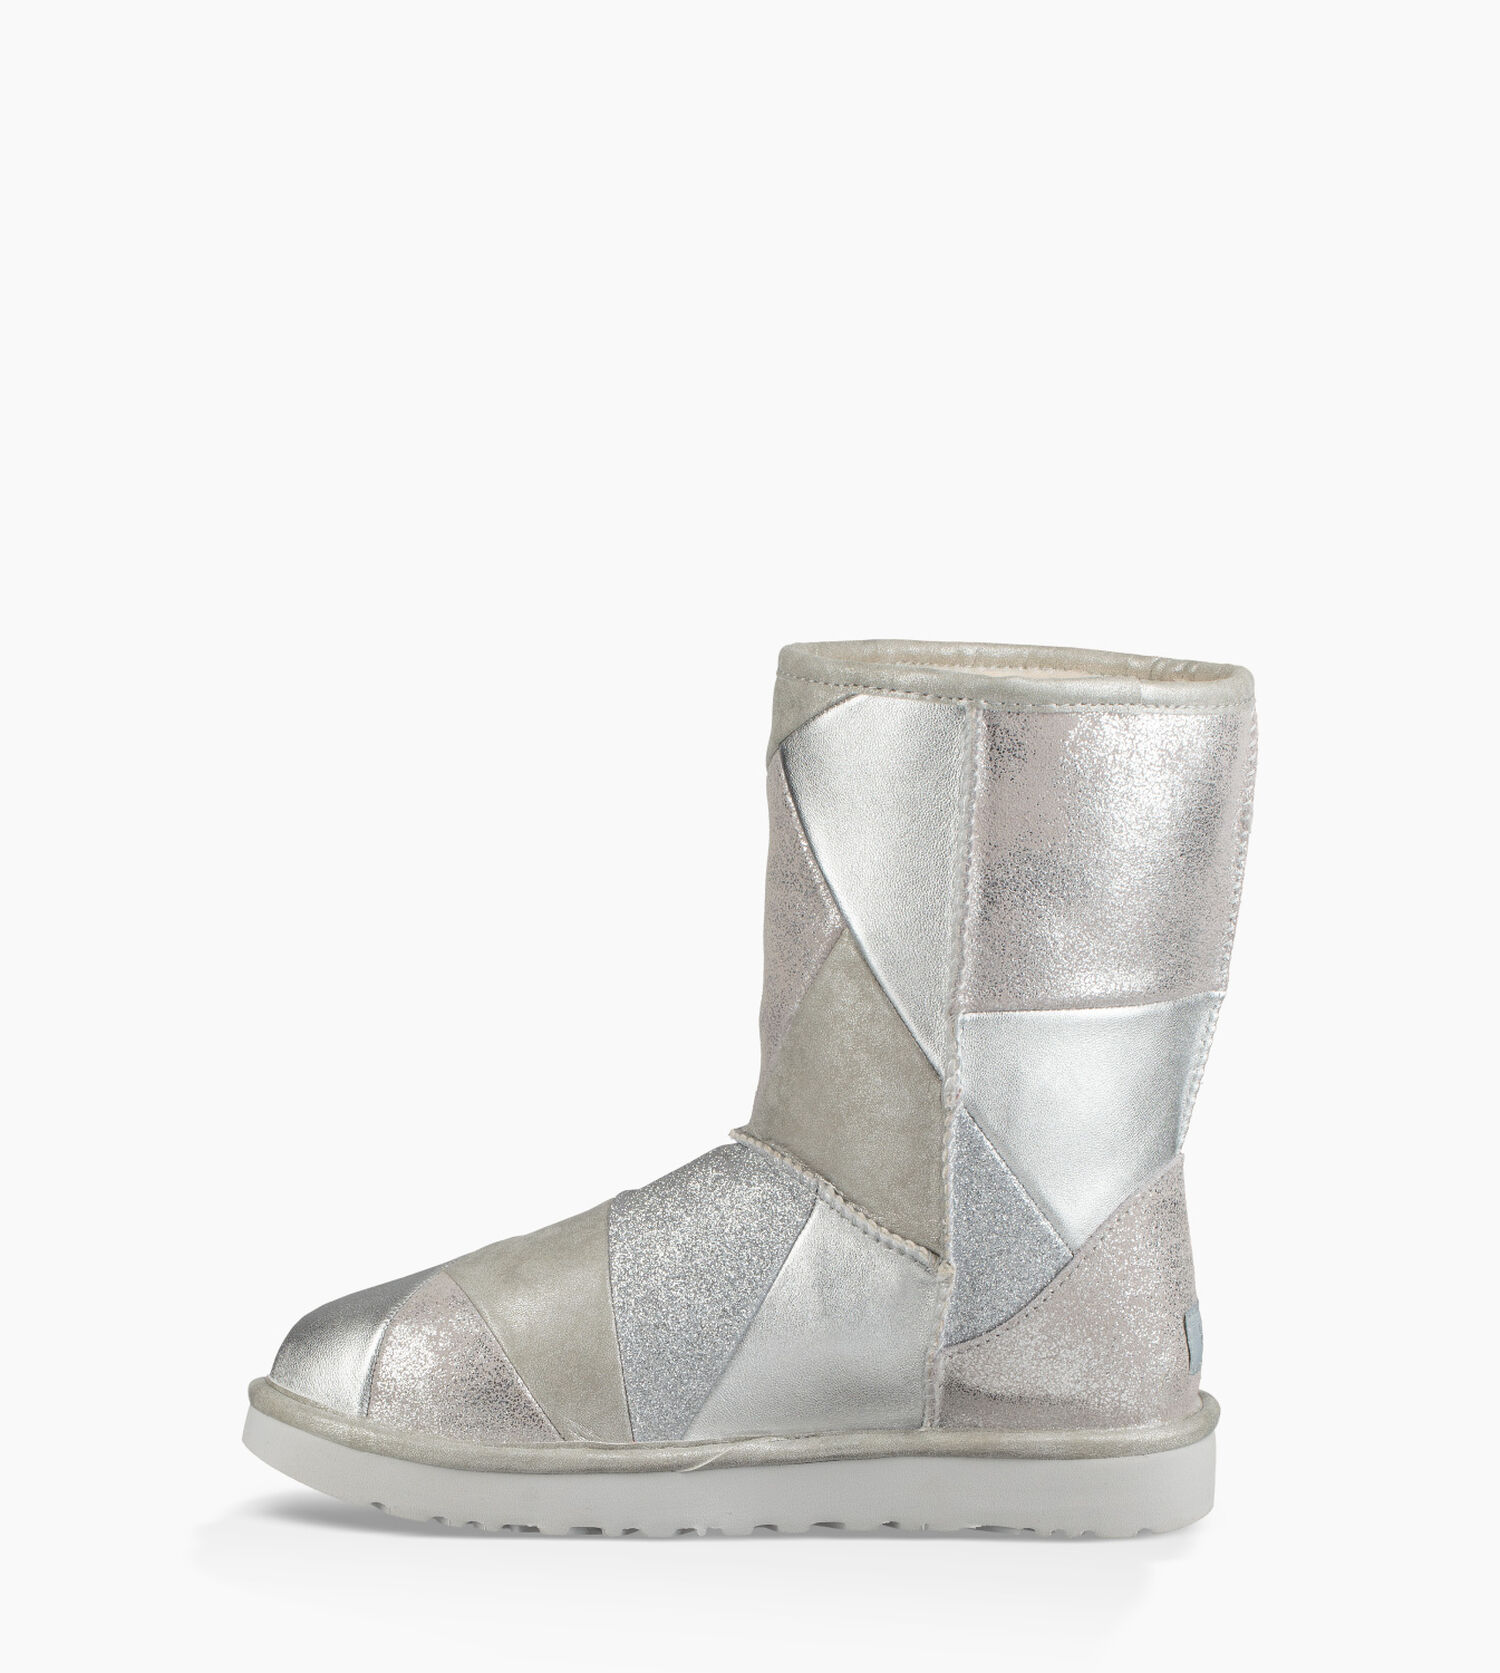 1c94506c4e1 Women's Share this product Classic Glitter Patchwork Boot